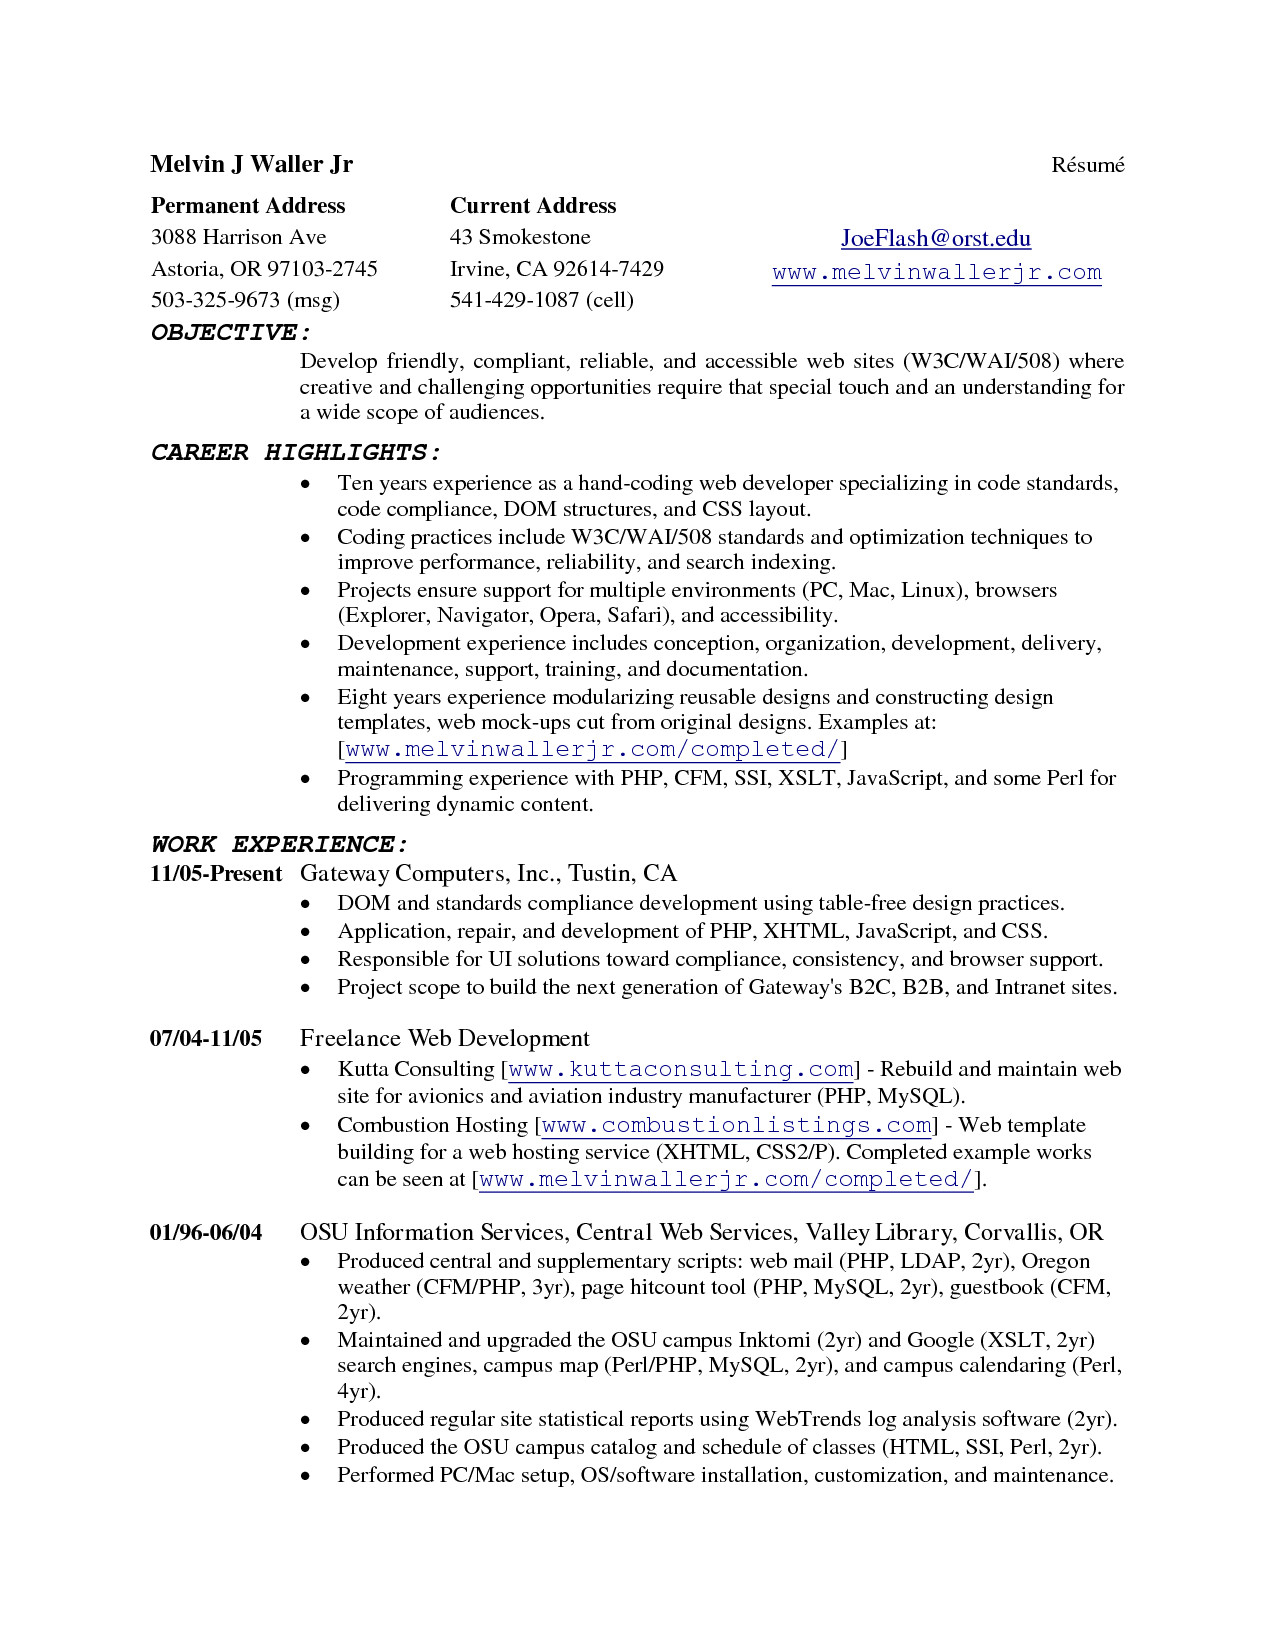 open office cover letter template free Collection-Cover Letter Openoffice Templates Resume Template For Writer 16-t